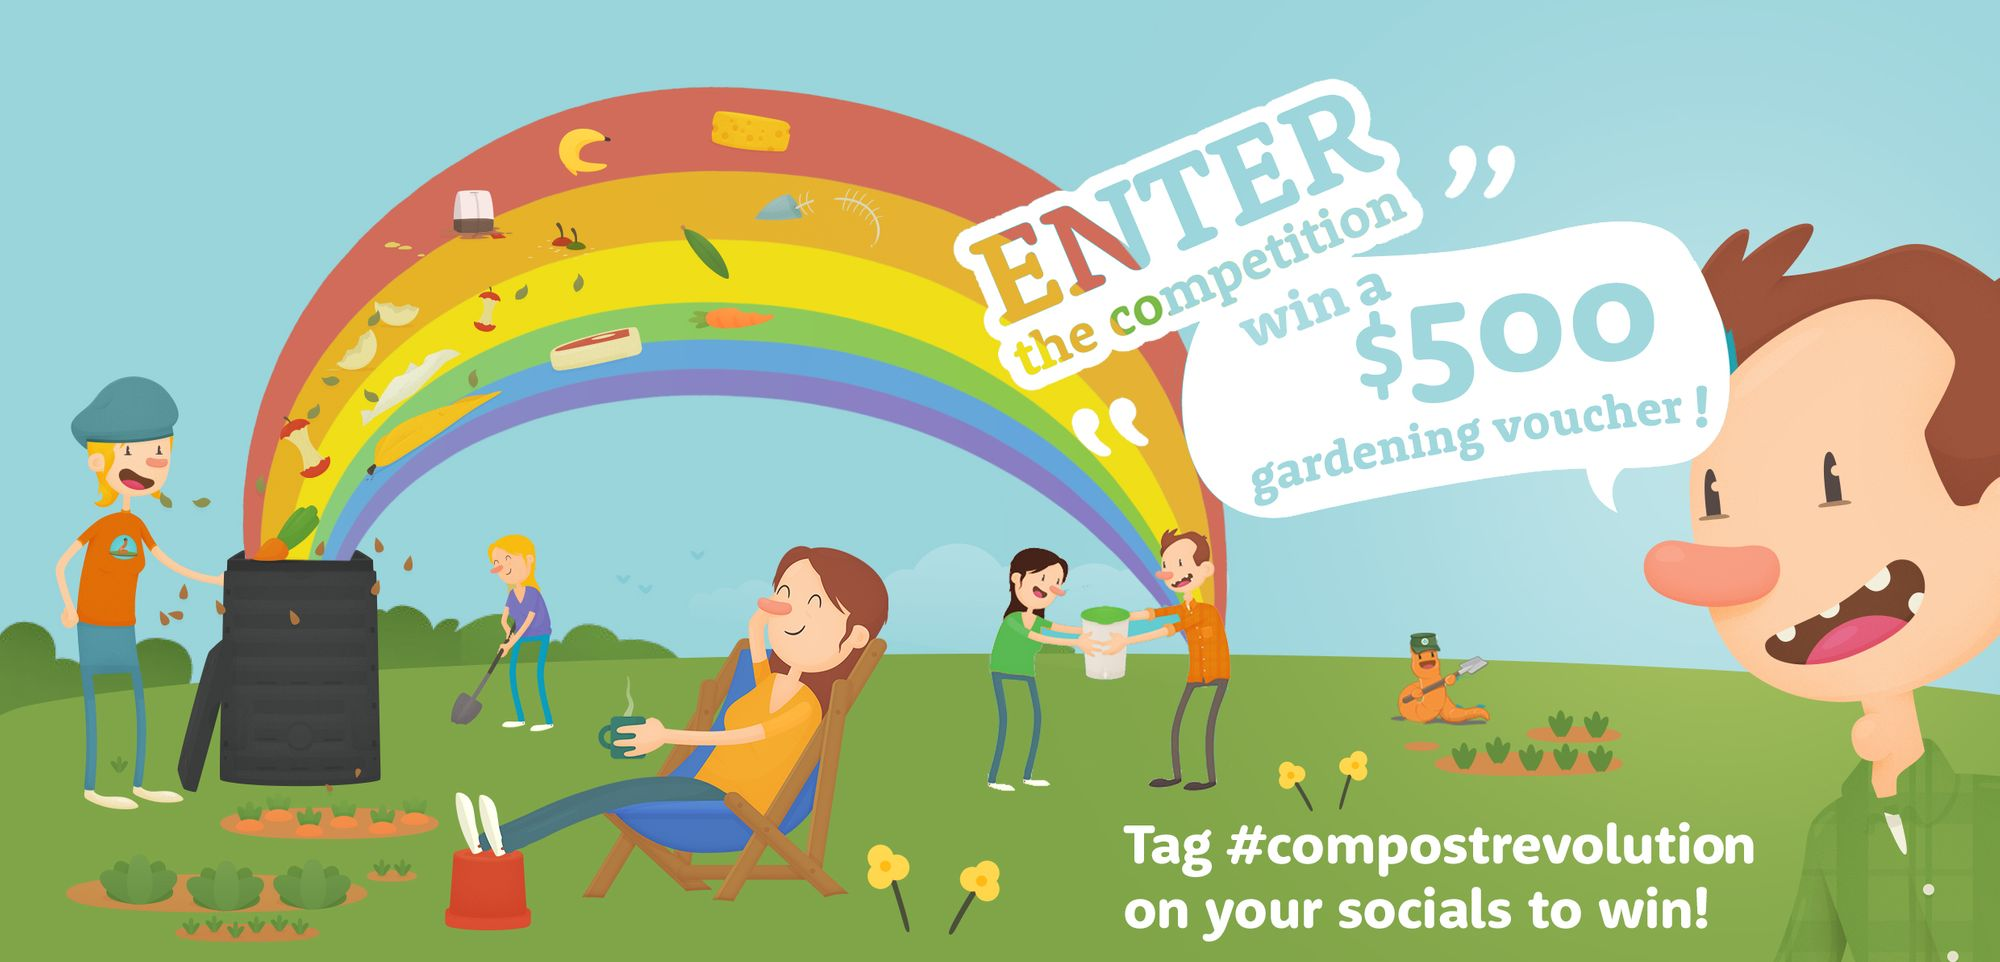 Enter the competition to win a $500 gardening voucher!